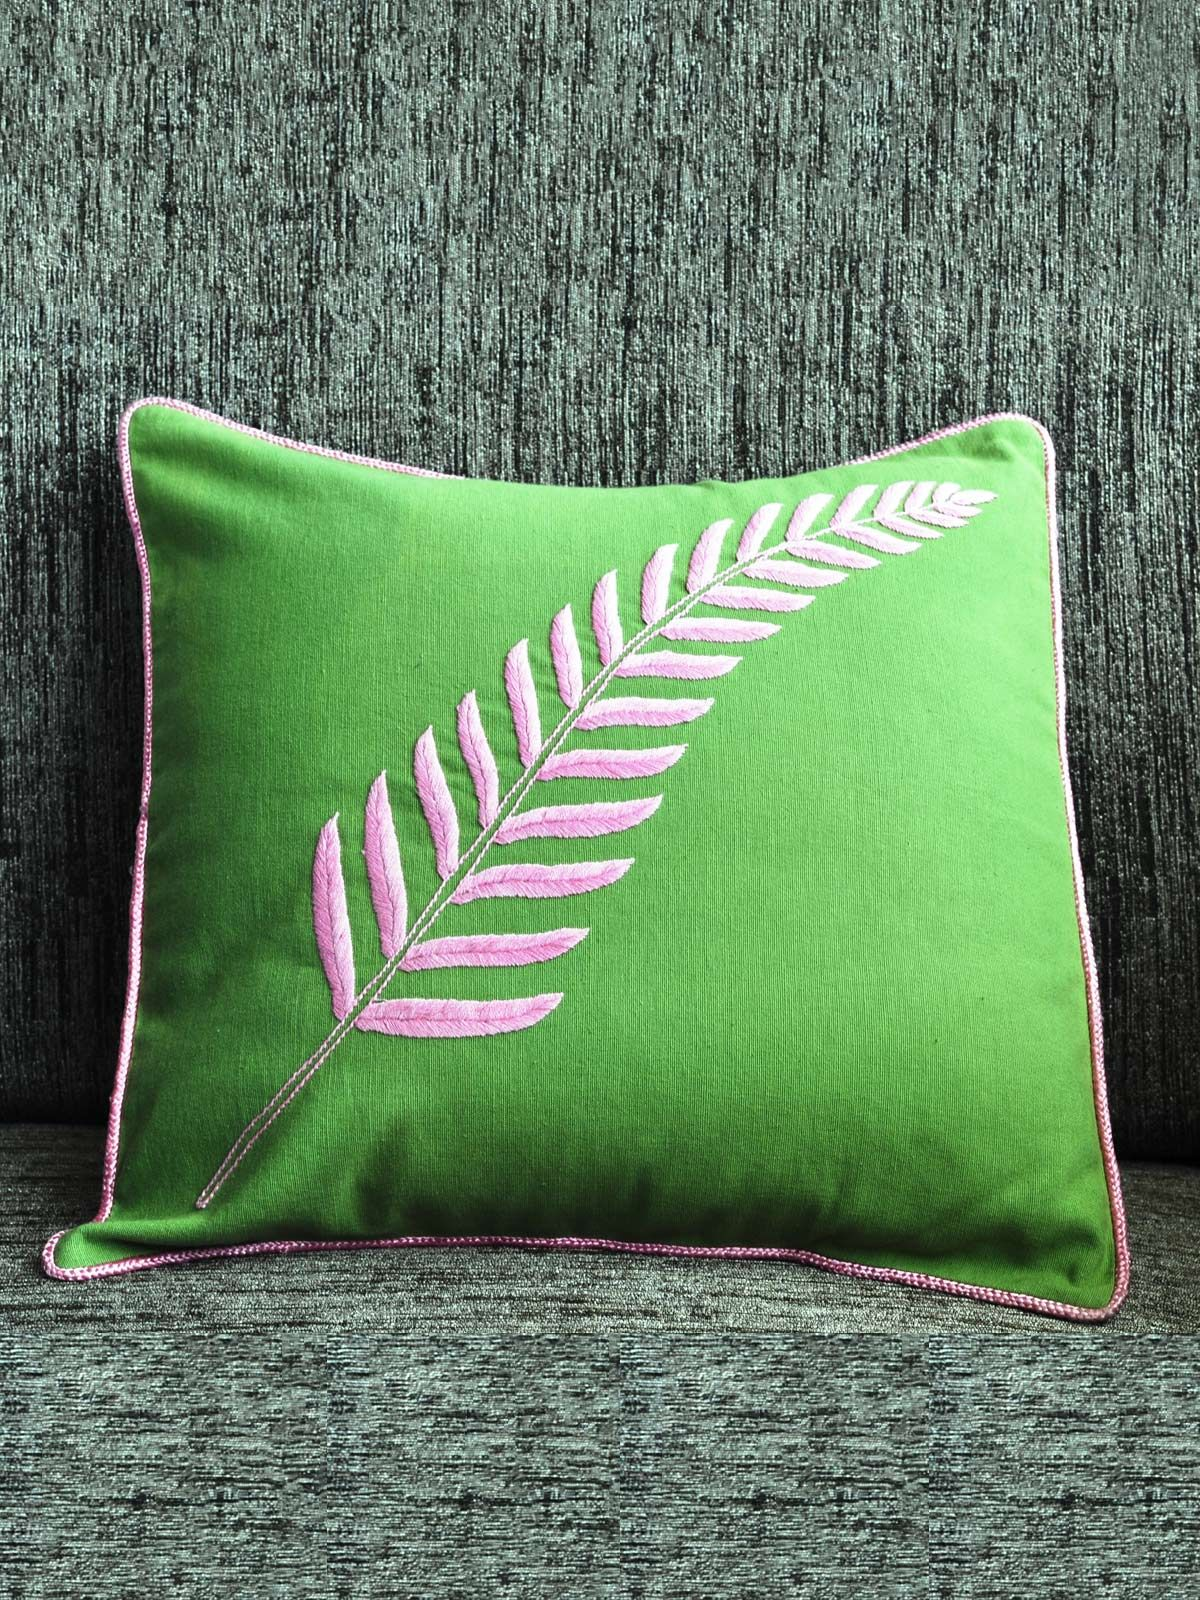 Handmade Embroidered Cushion cover for bed or sofa set